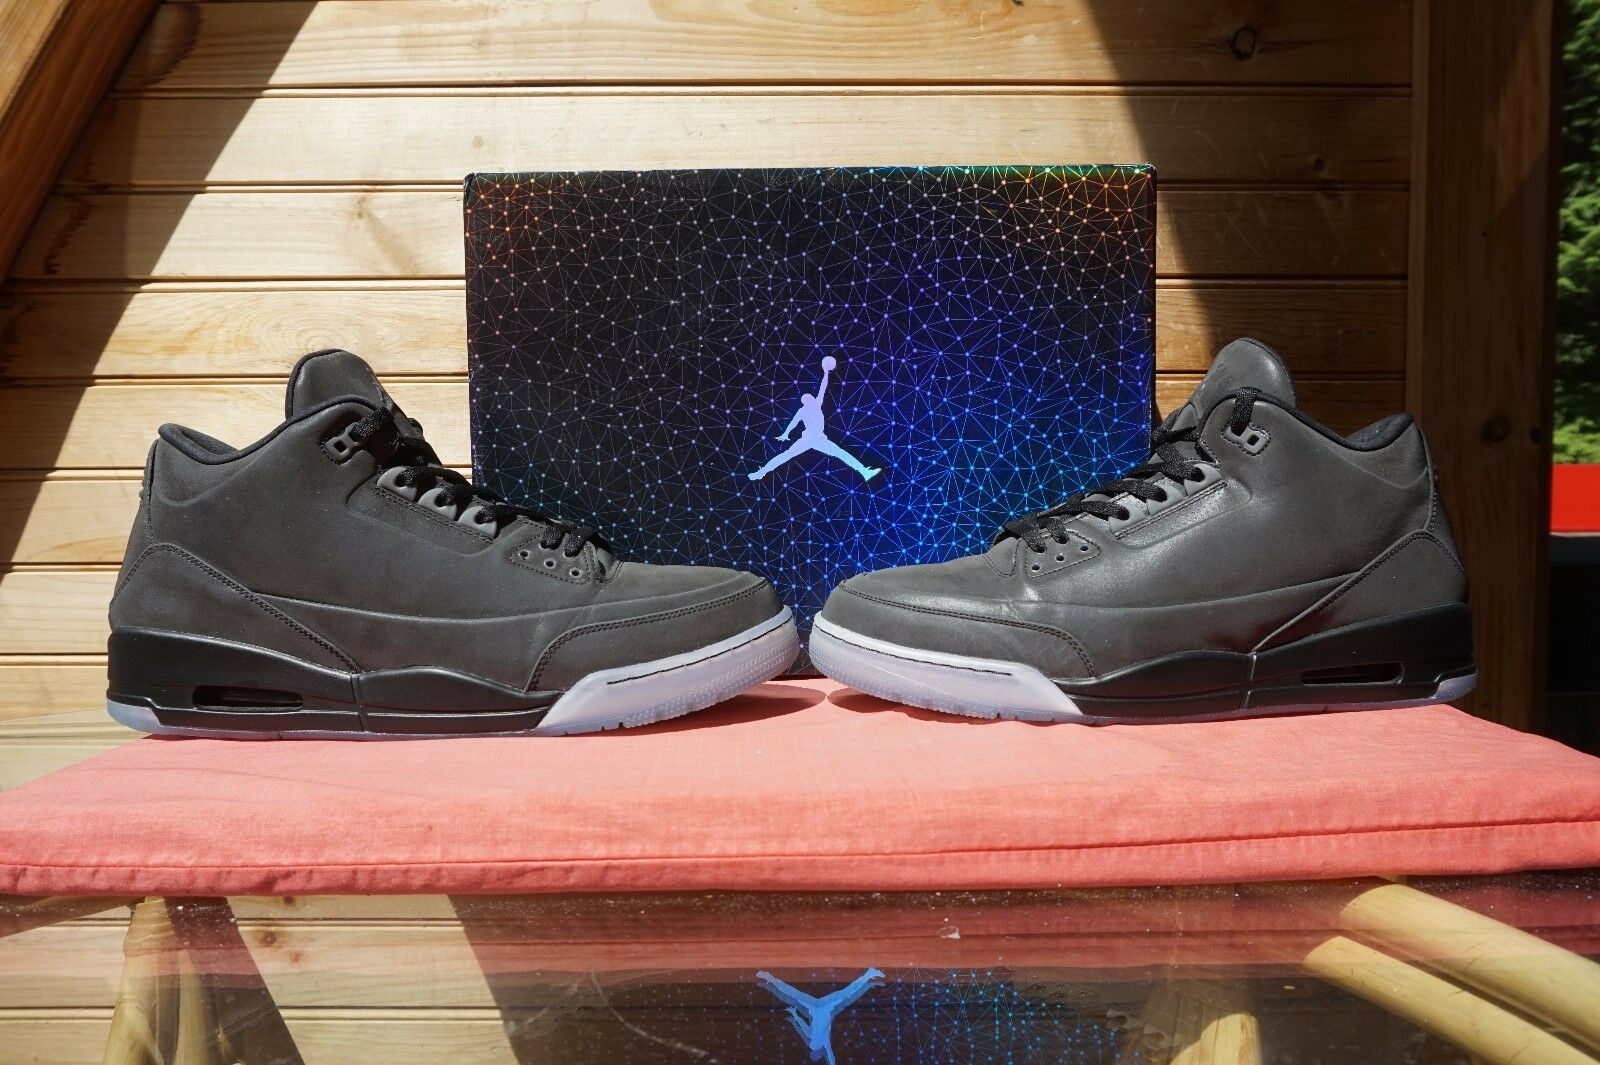 2014 Nike Air Jordan 5LAB3 Black Clear Sz 14 (4626) 631603-010